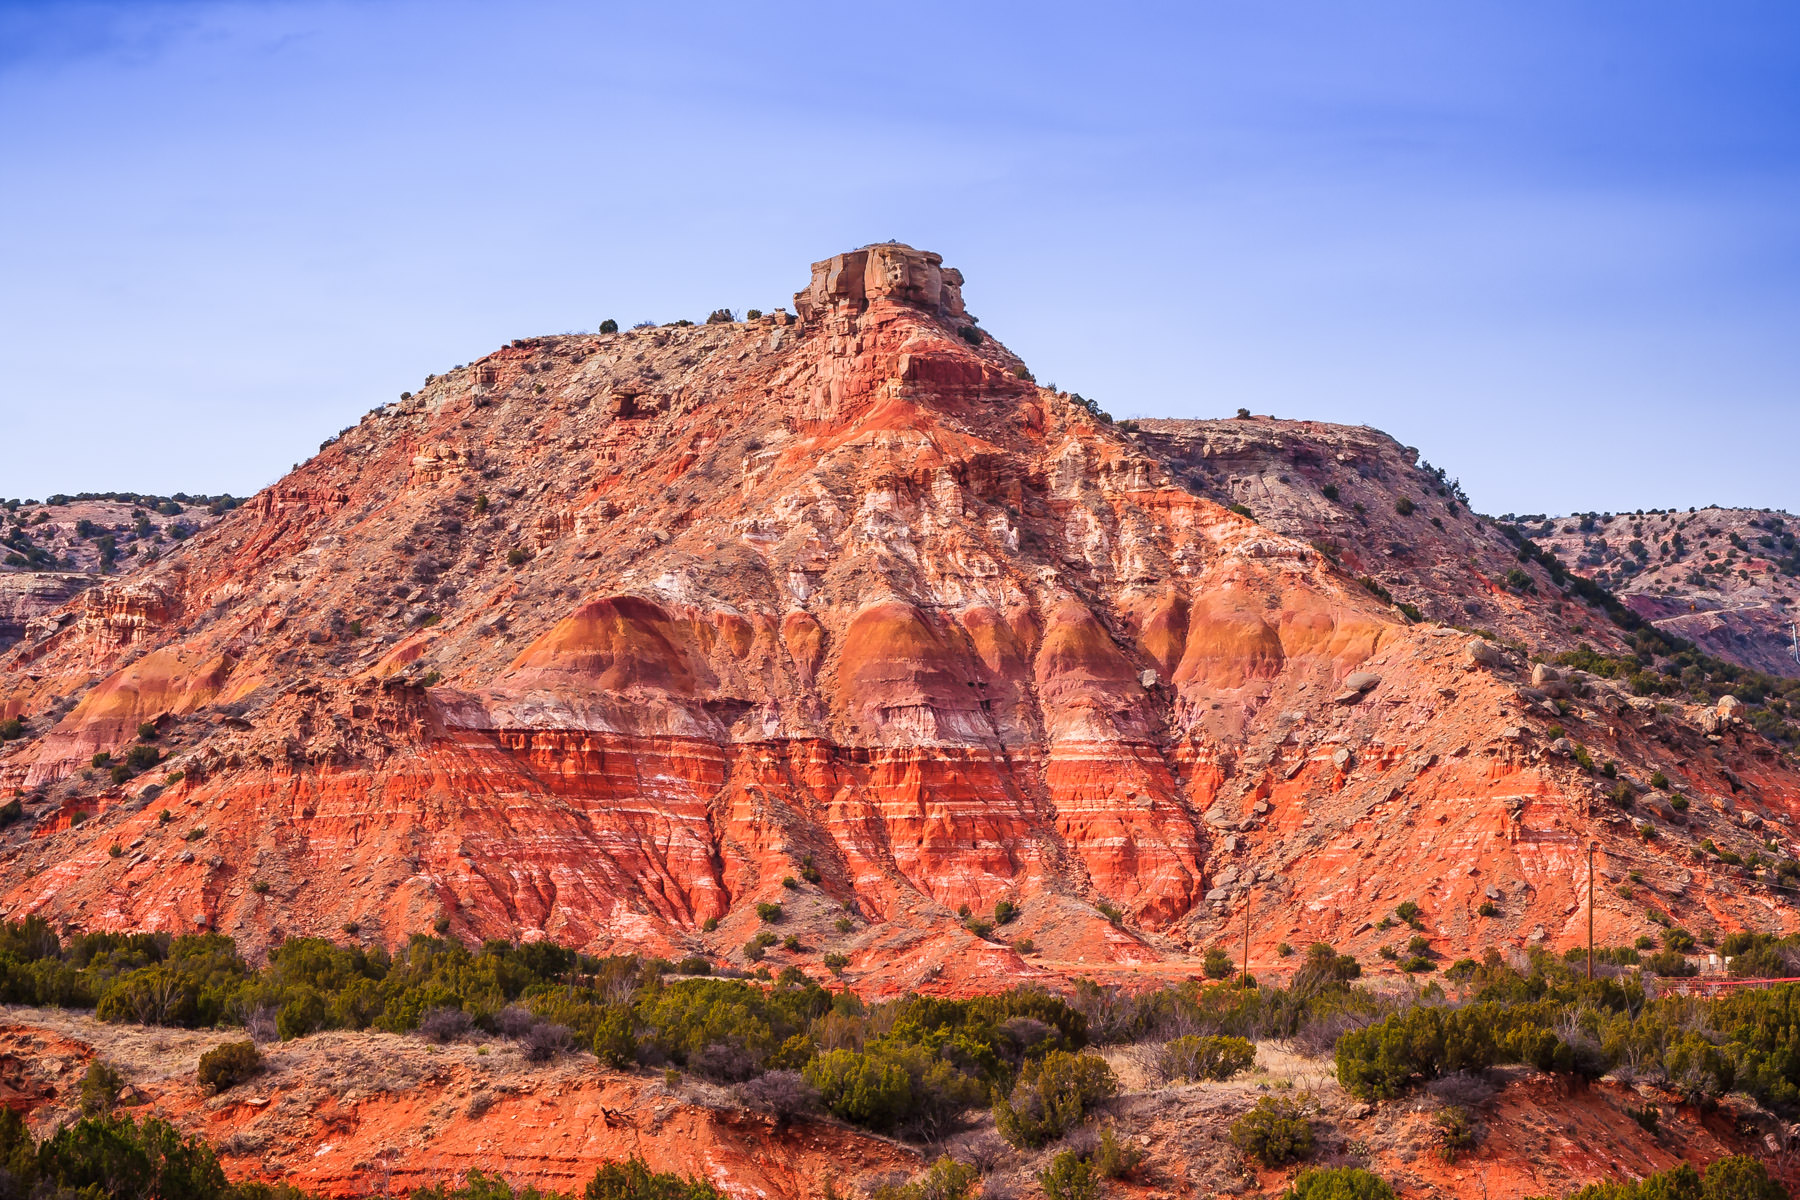 A rocky hill rises above the surrounding landscape at Palo Duro Canyon, Texas.